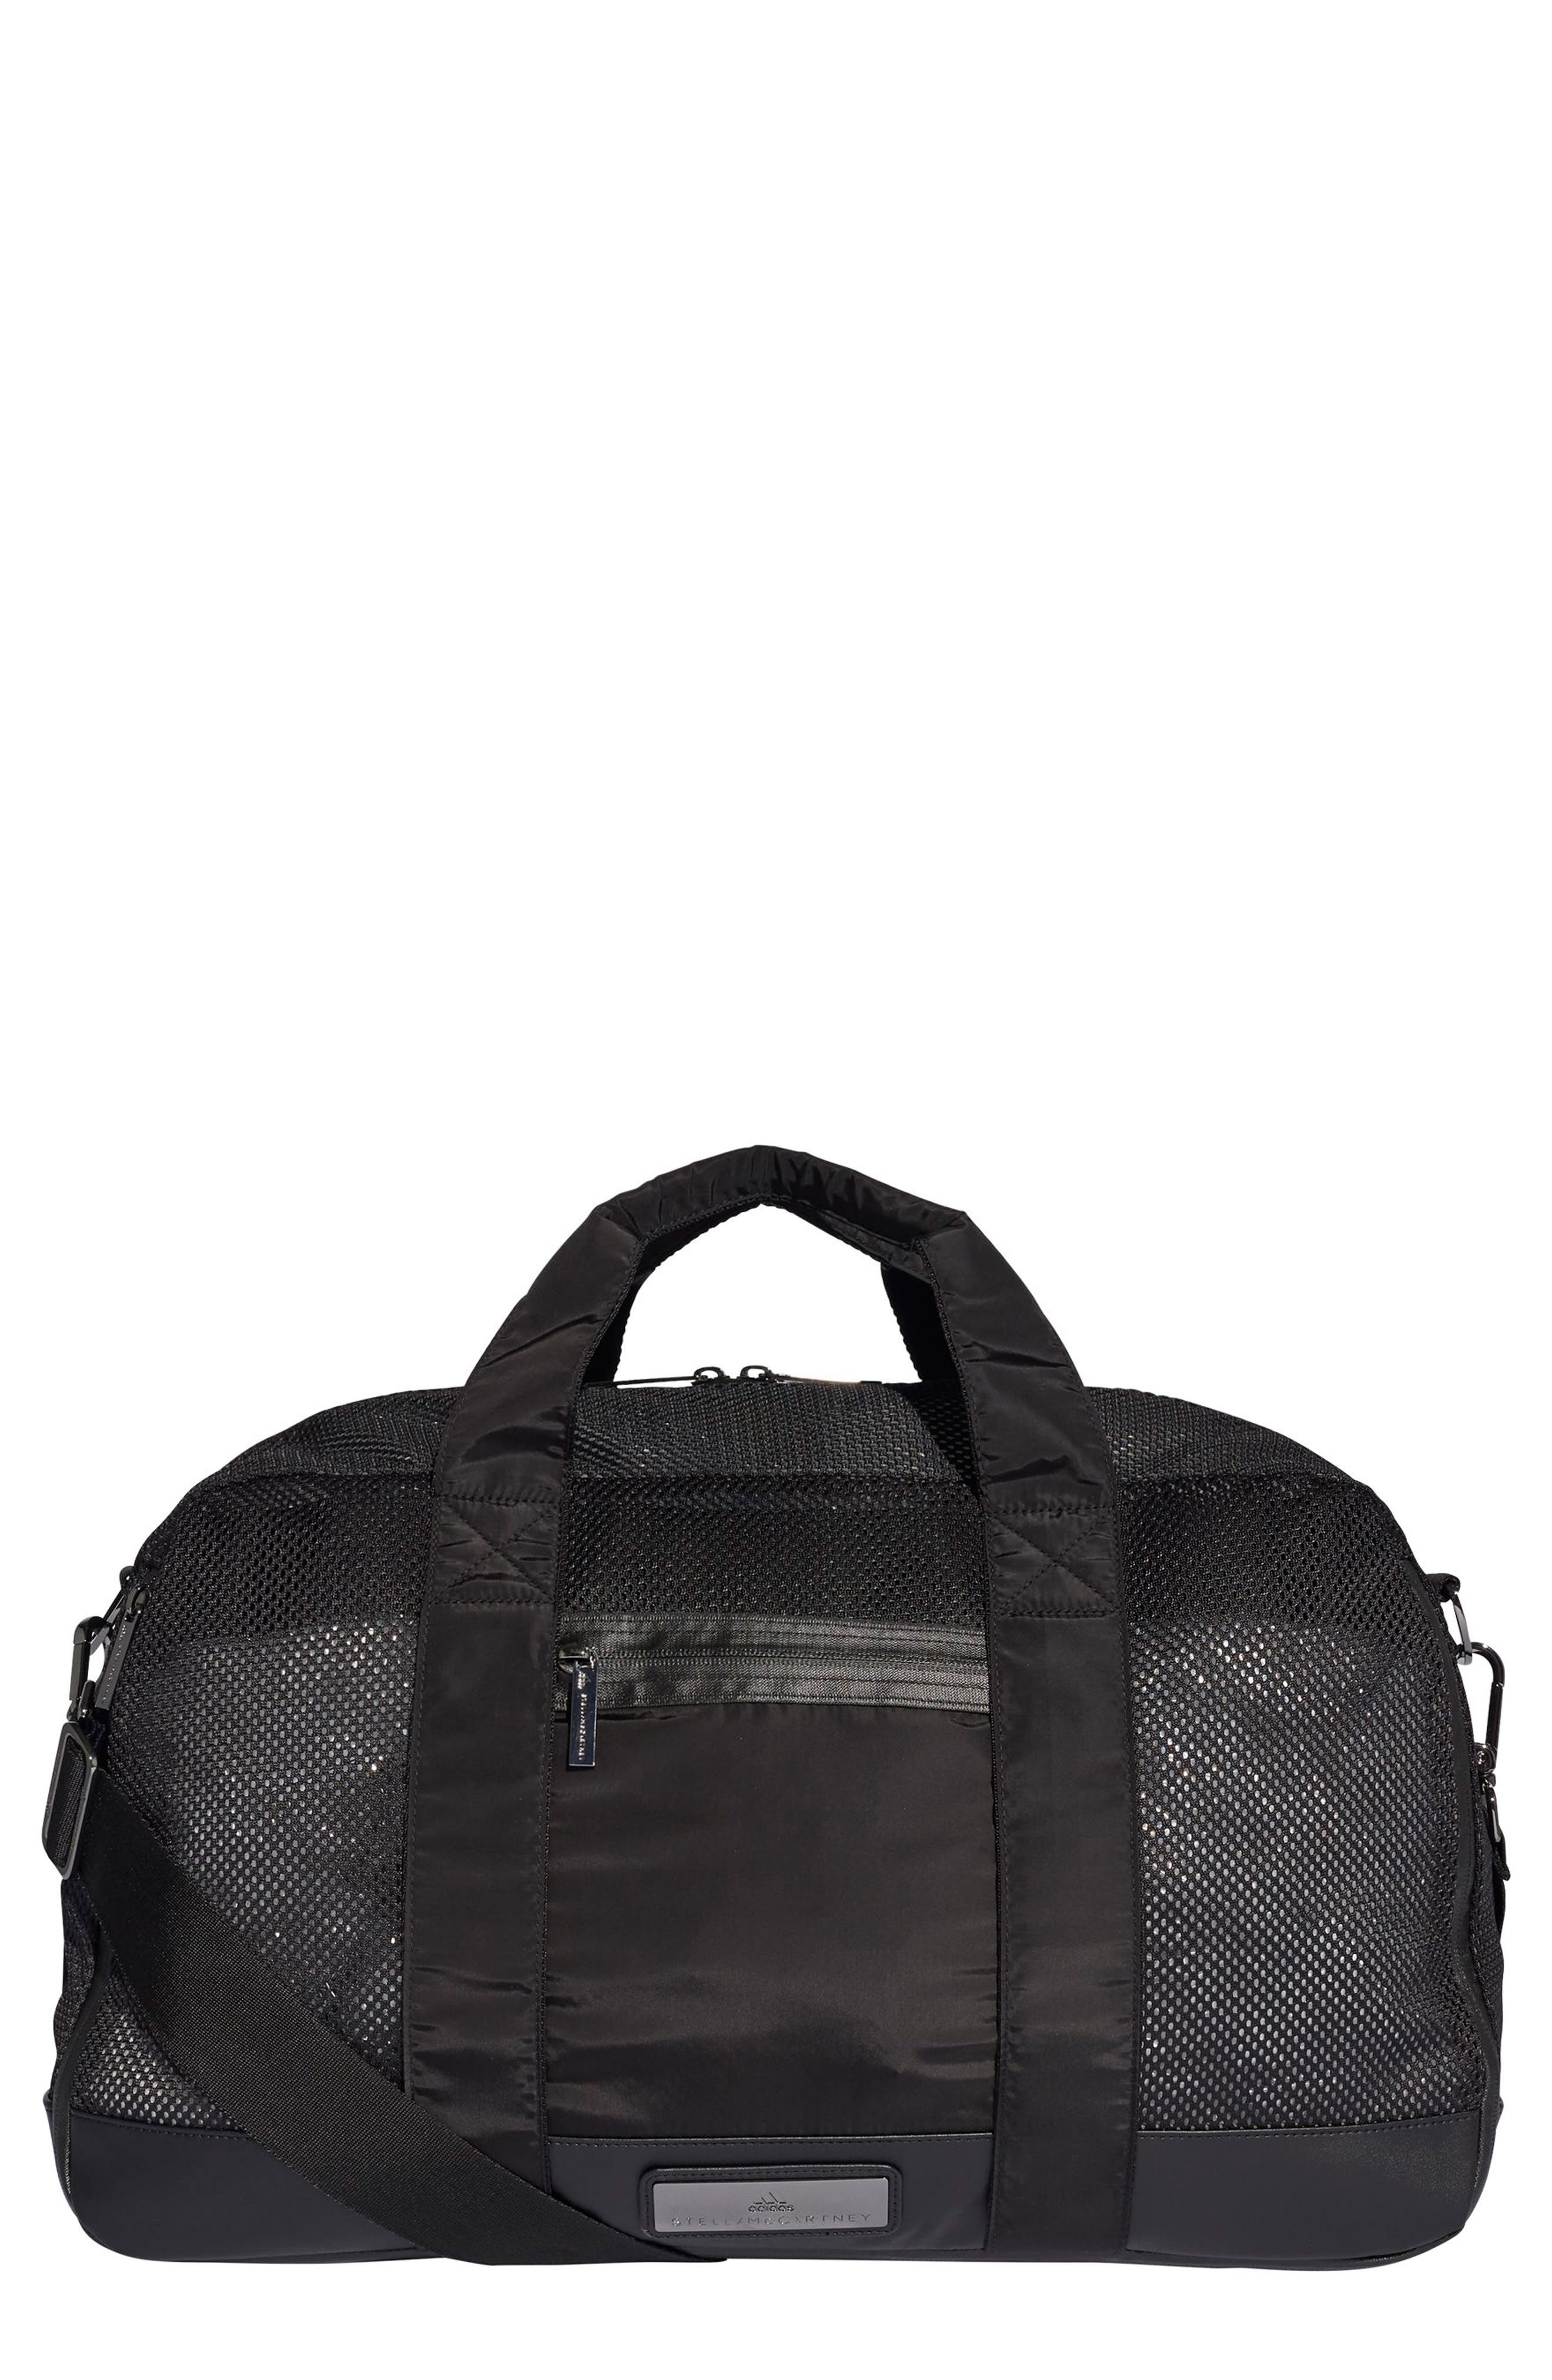 Mesh Yoga Bag,                         Main,                         color, BLACK/ BLACK